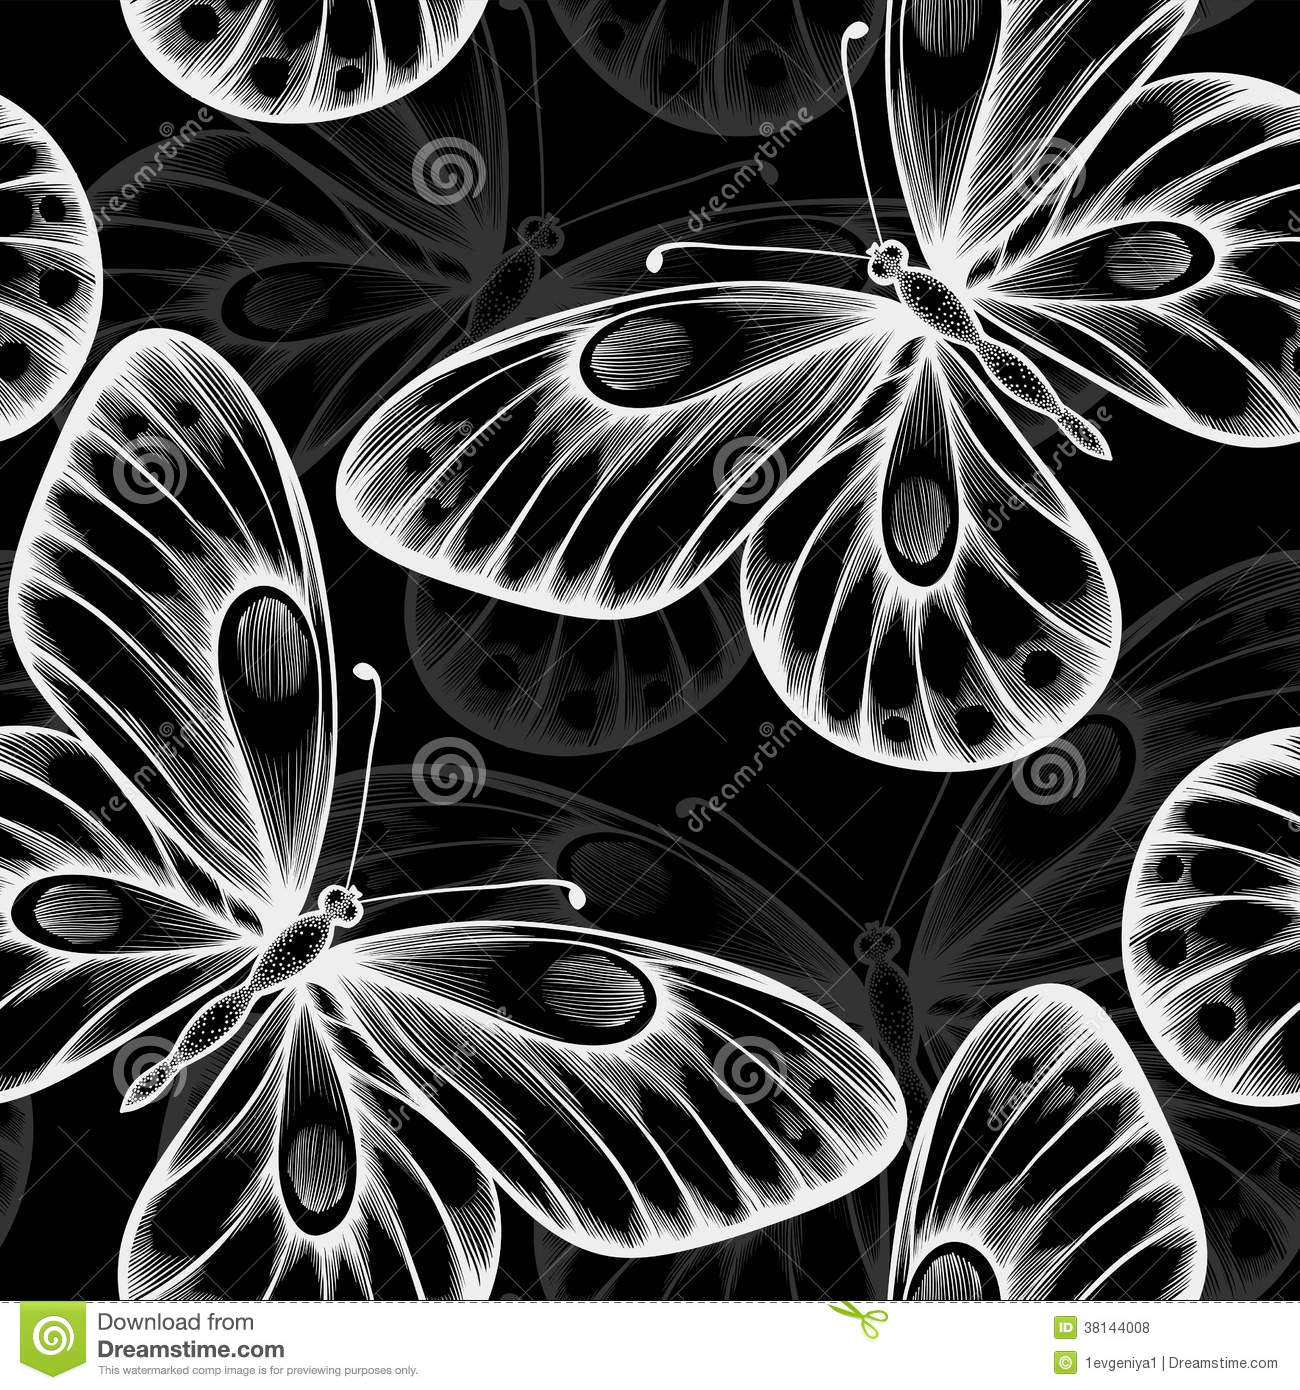 Beautiful Monochrome Black And White Seamless Background With Flying Butterflies Royalty Free